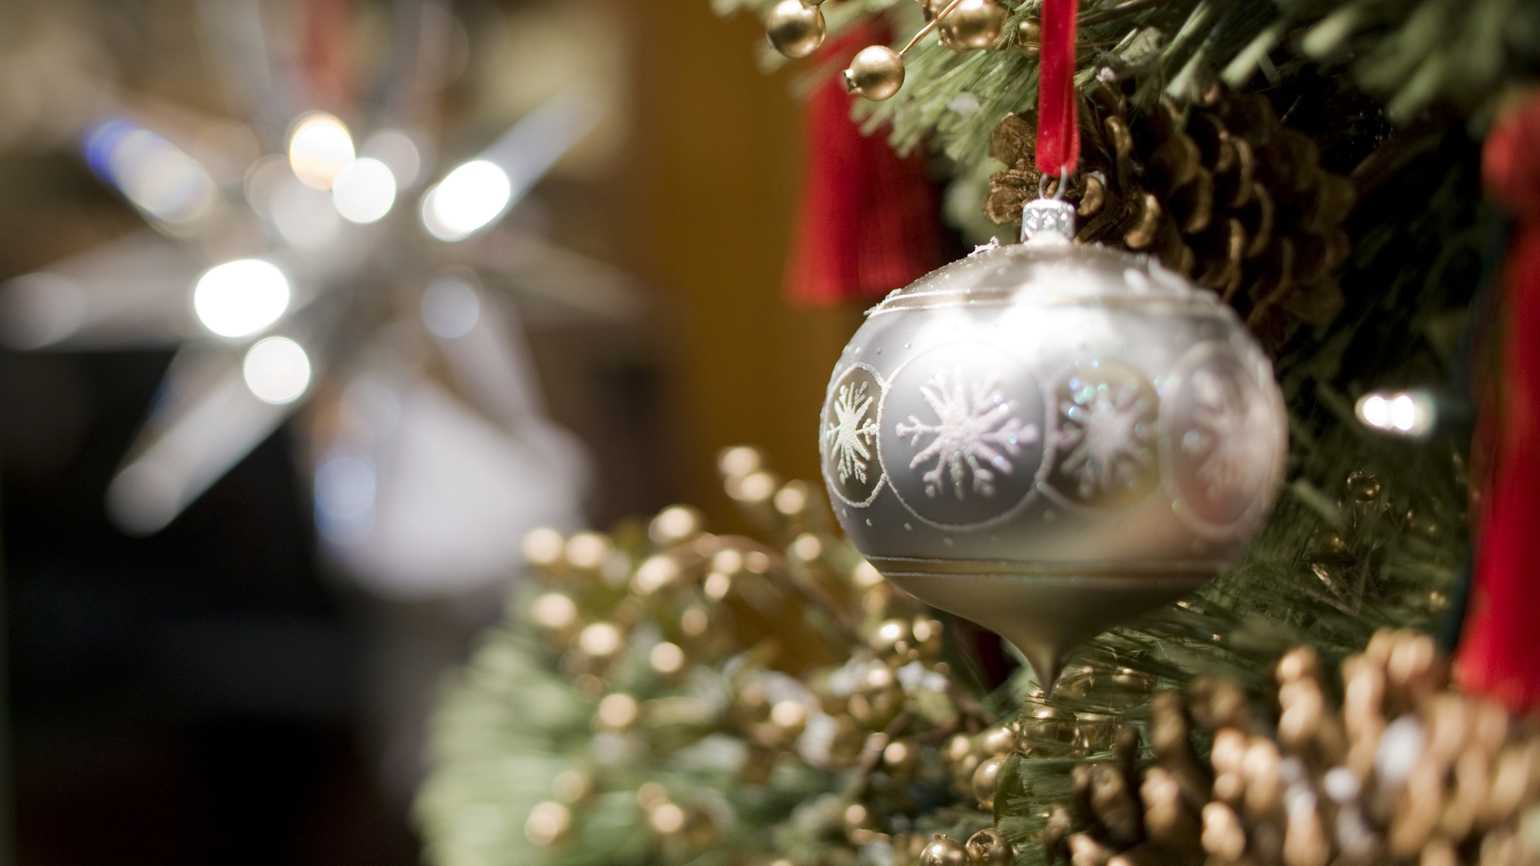 Close up of a silver Christmas ornament hanging on a branch of a Christmas tree.